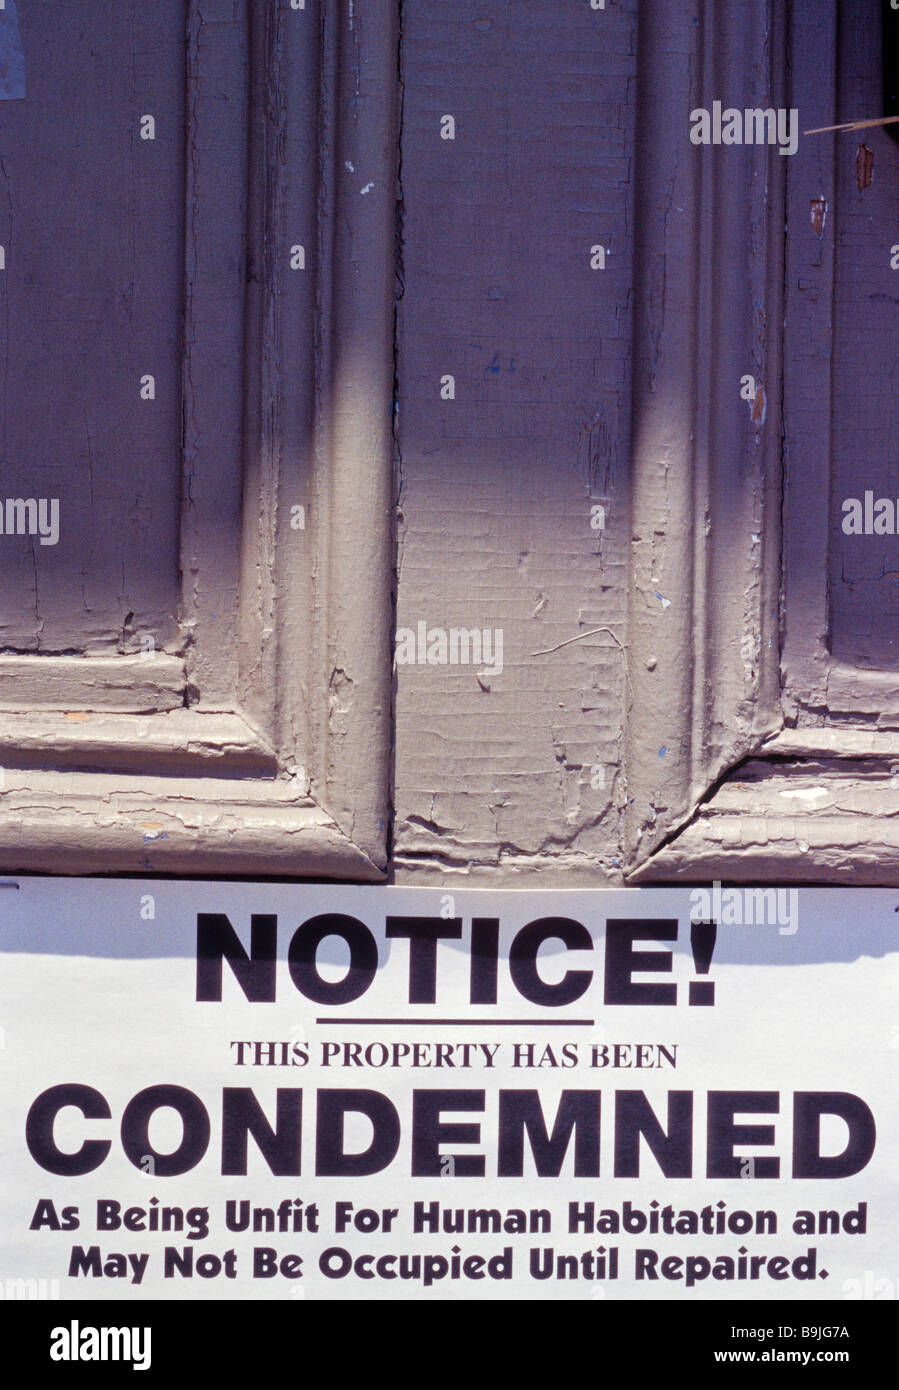 Notice this property has been condemned as being unfit for human